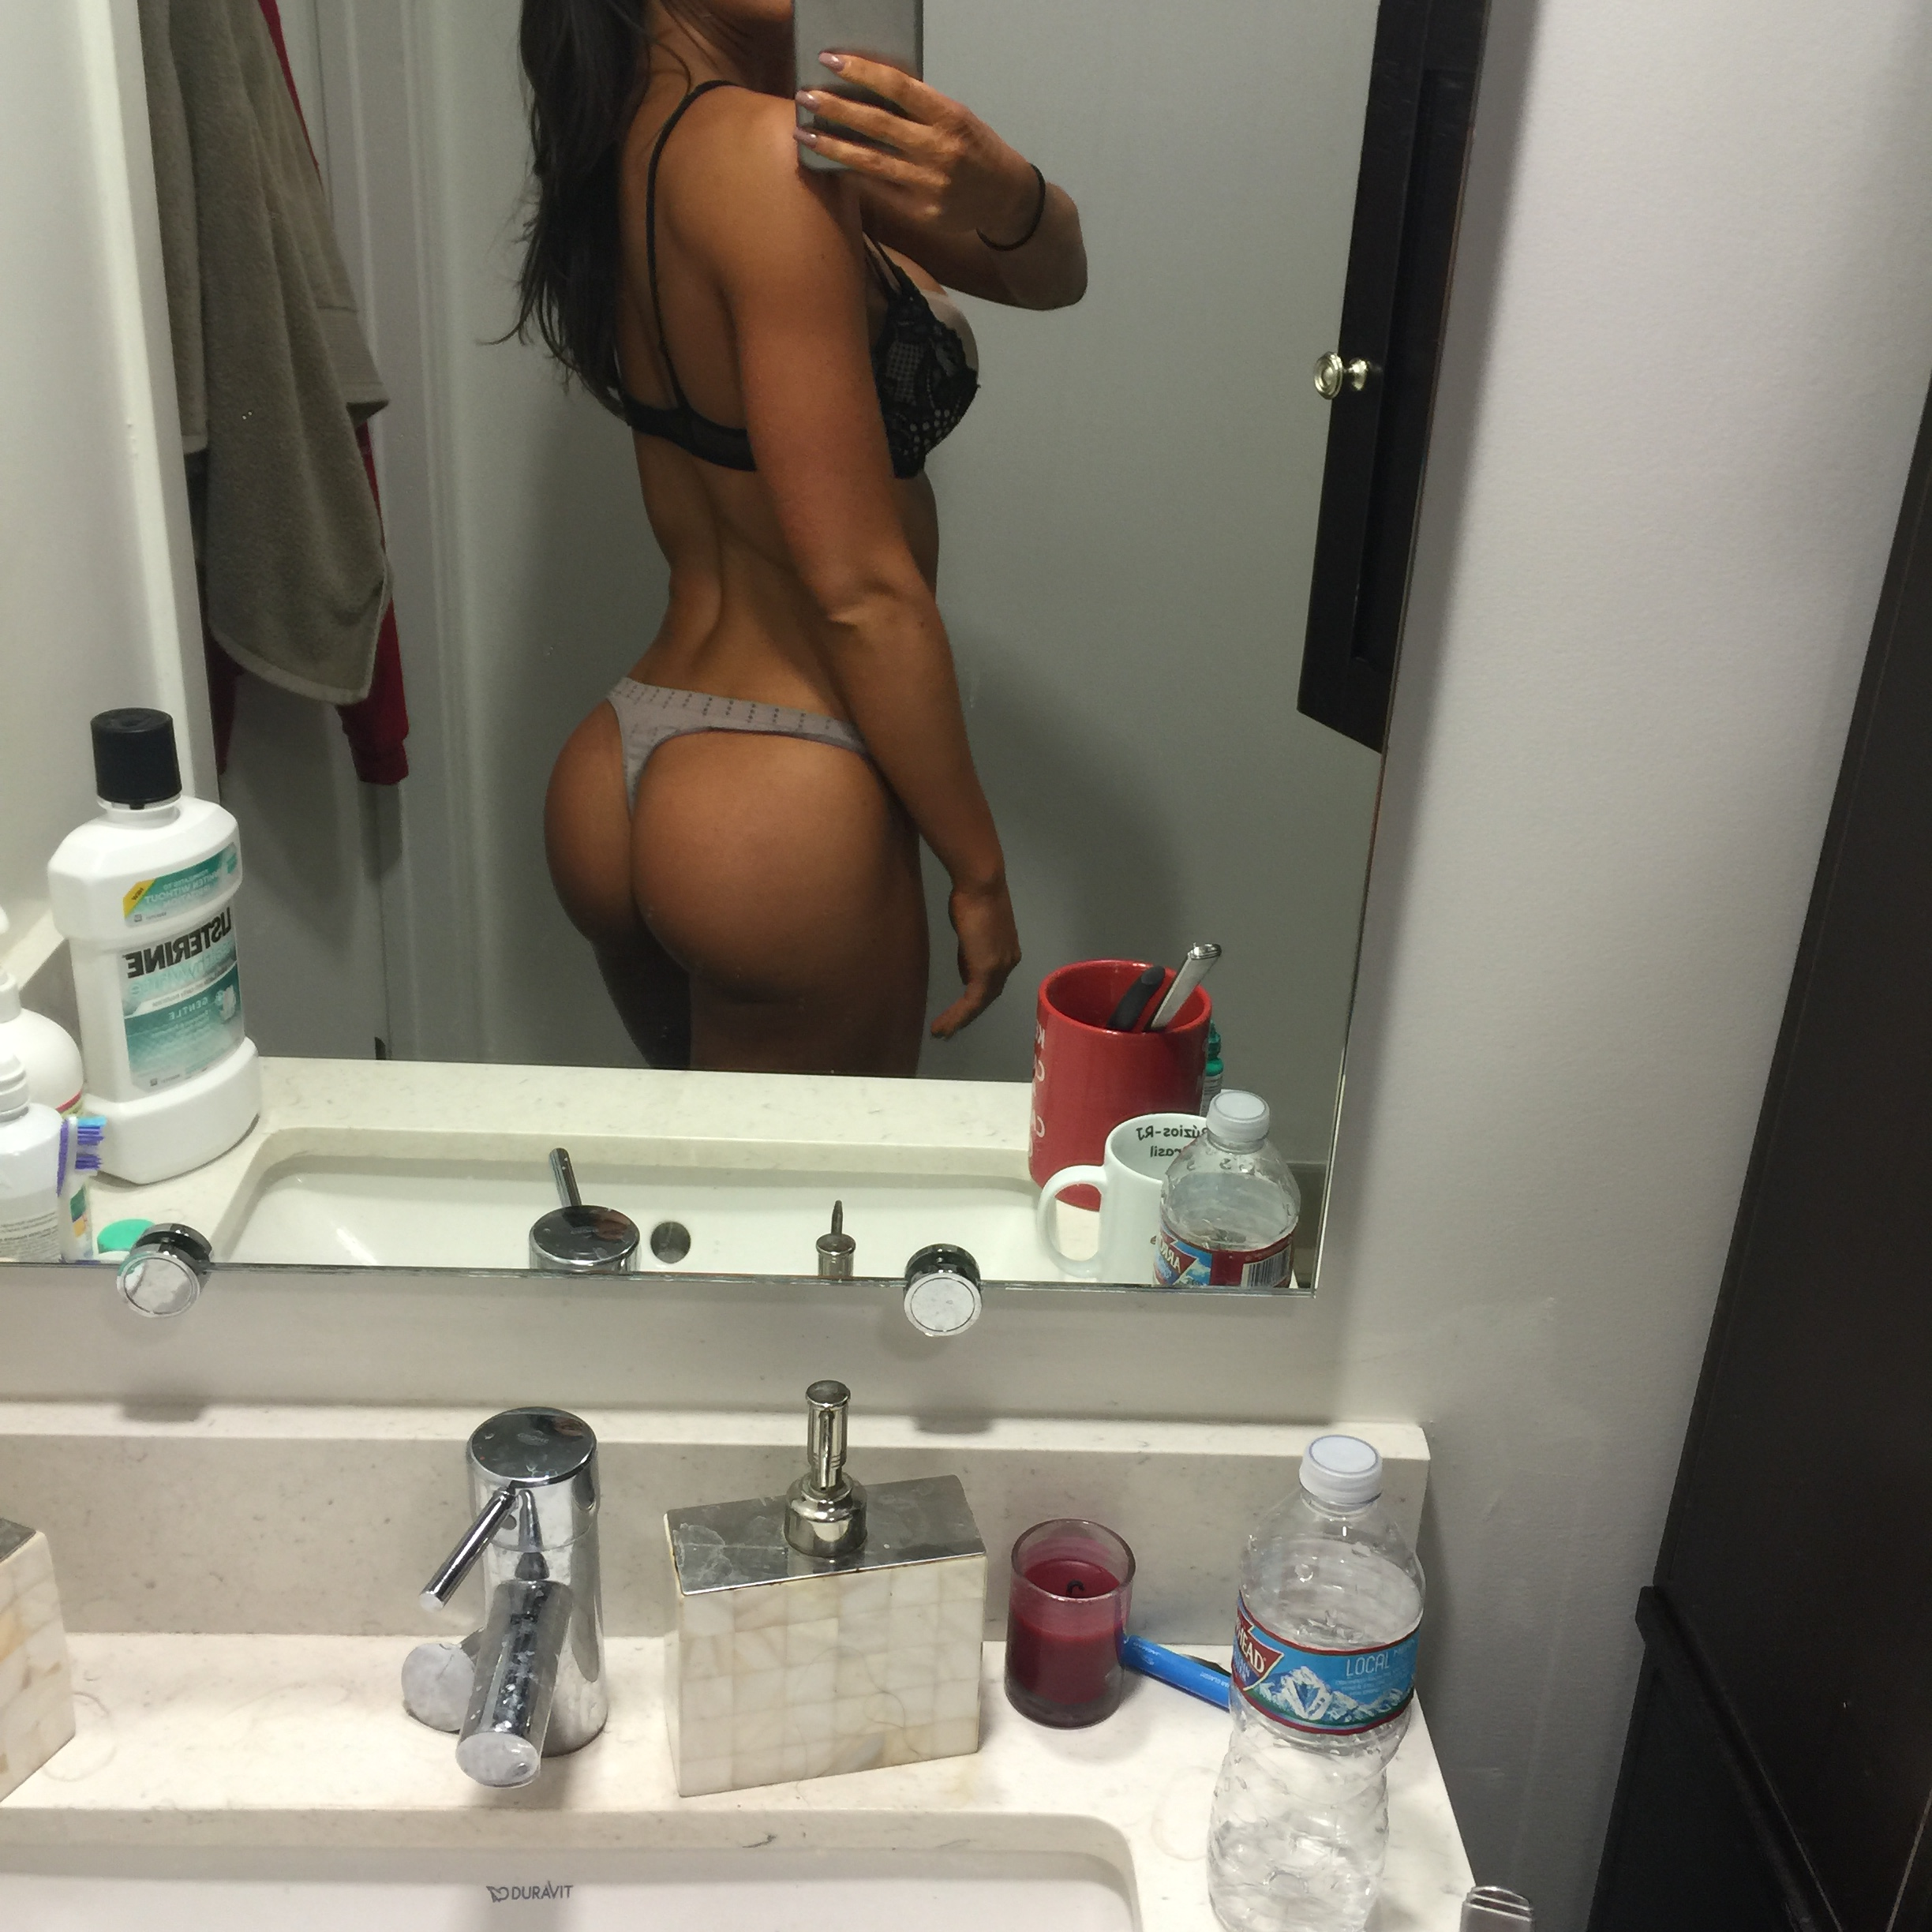 nudes (24 photo), Topless Celebrity picture